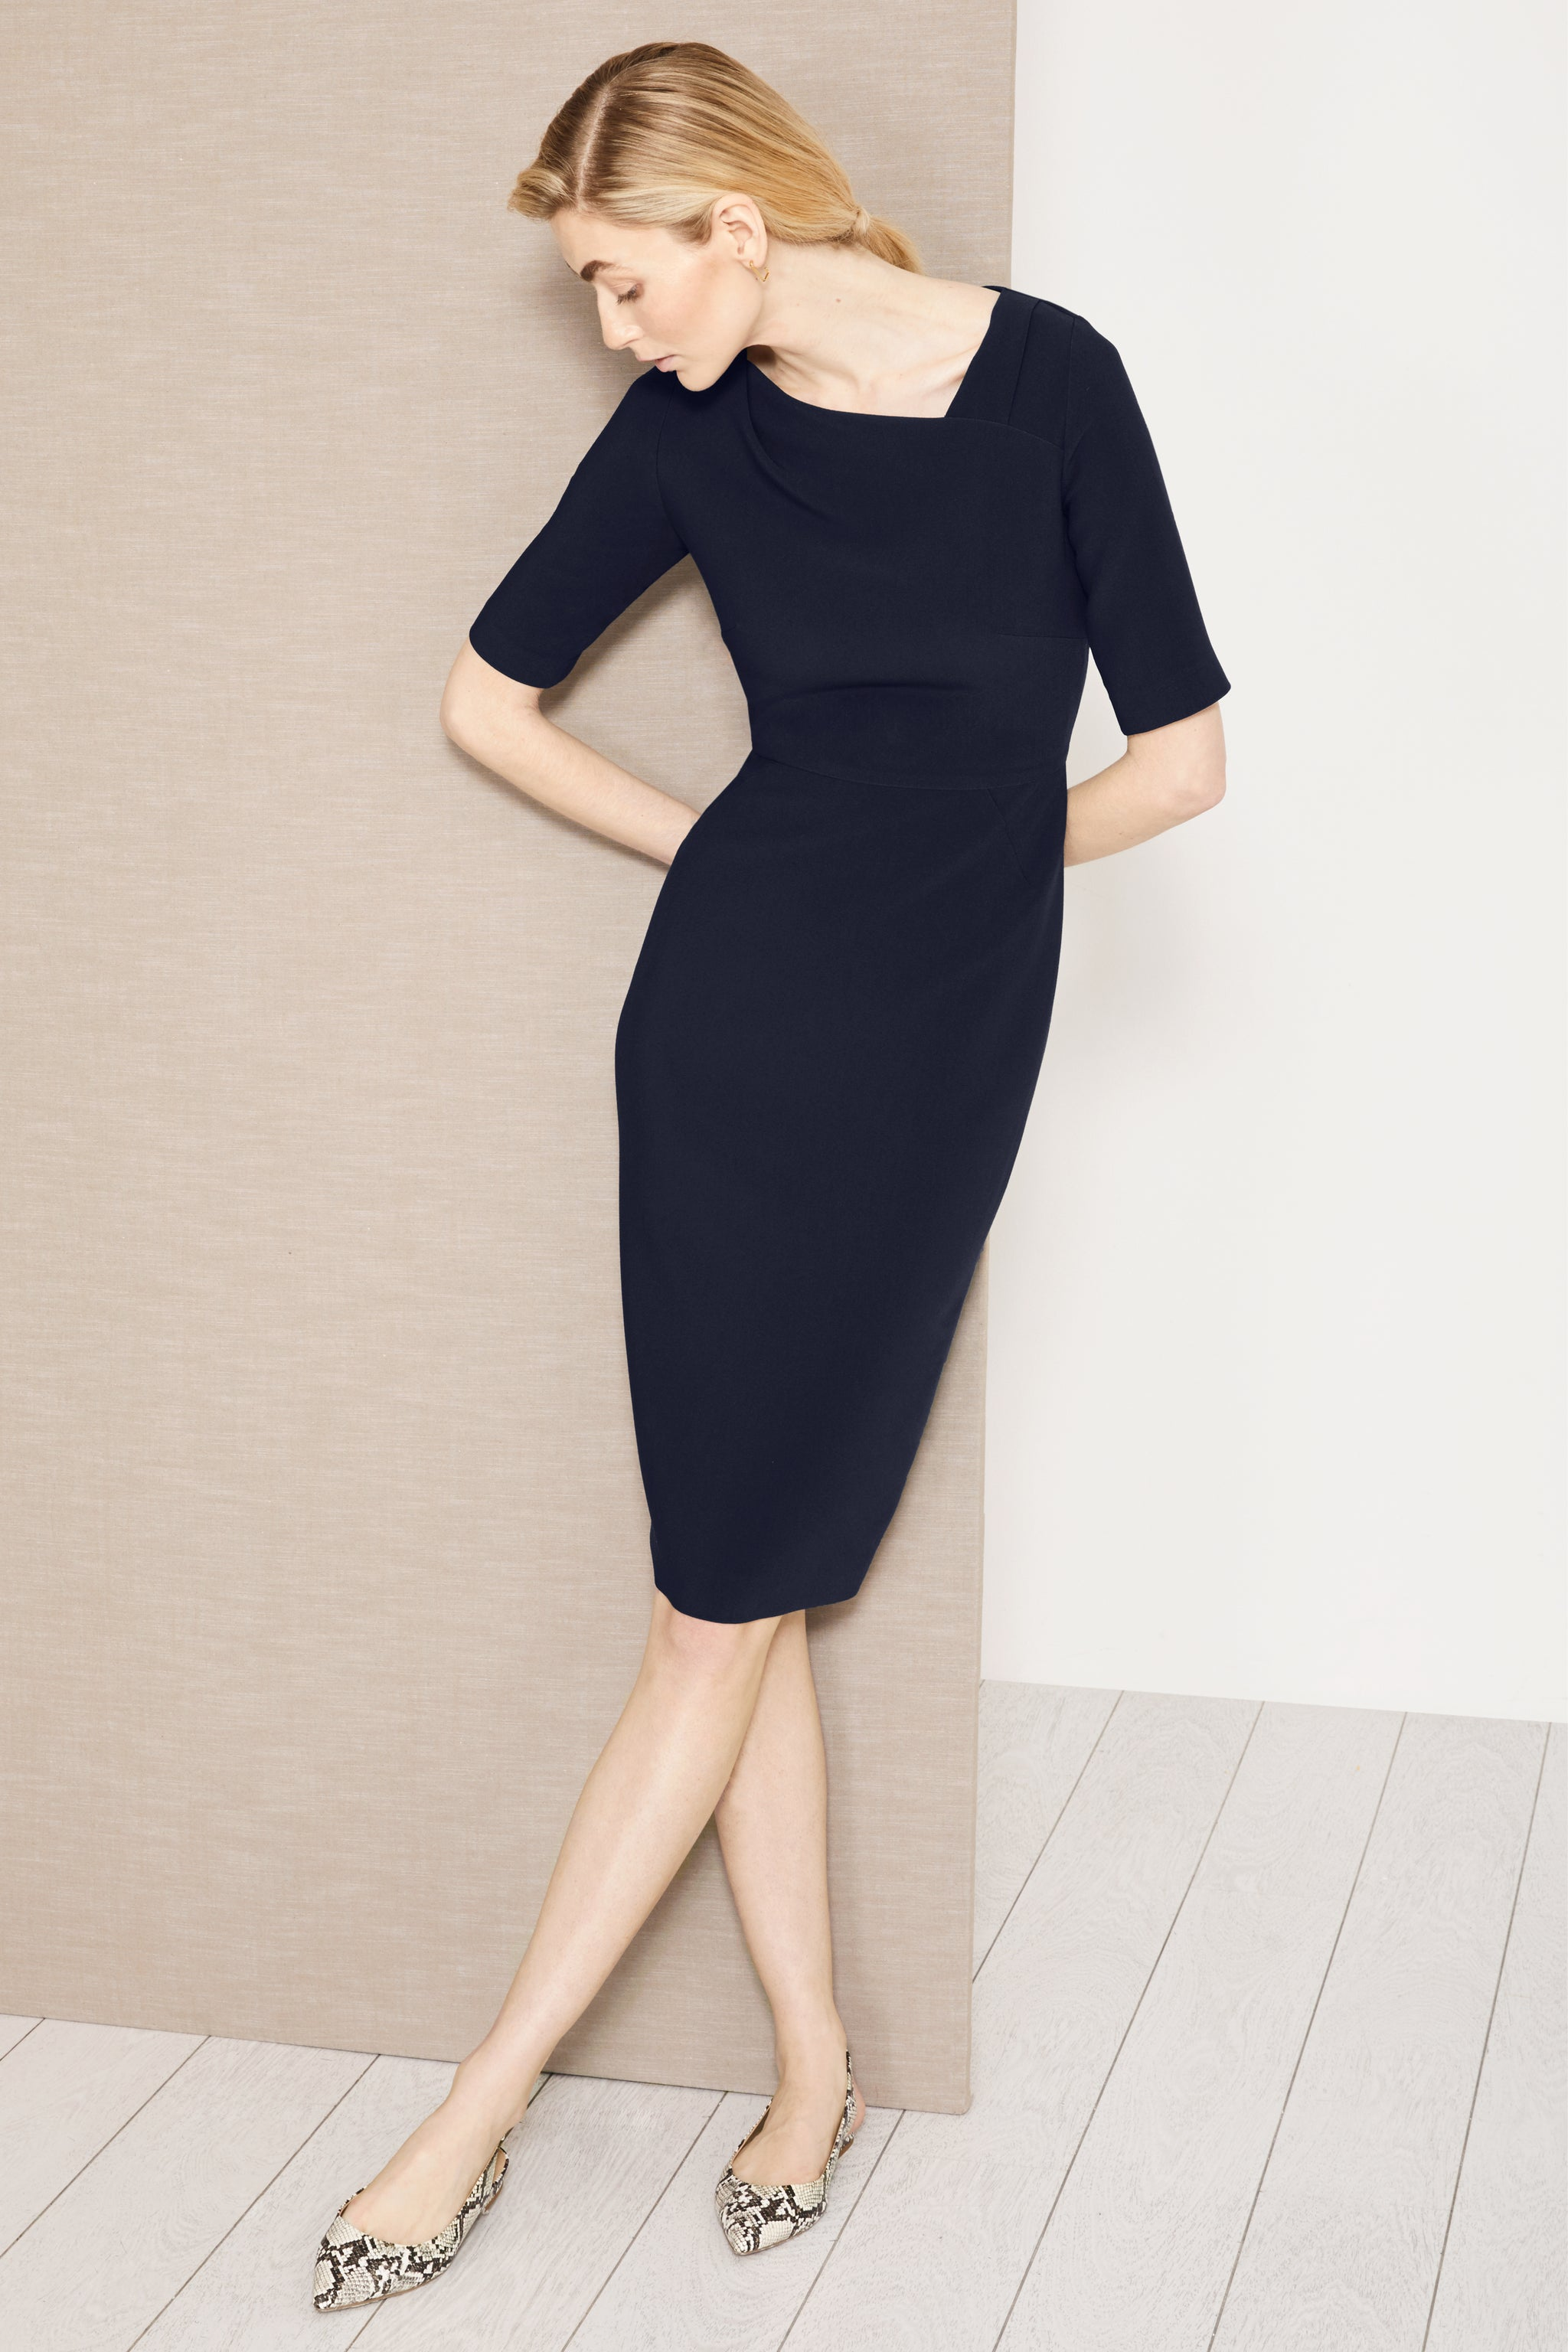 Thurloe Navy Suiting Dress